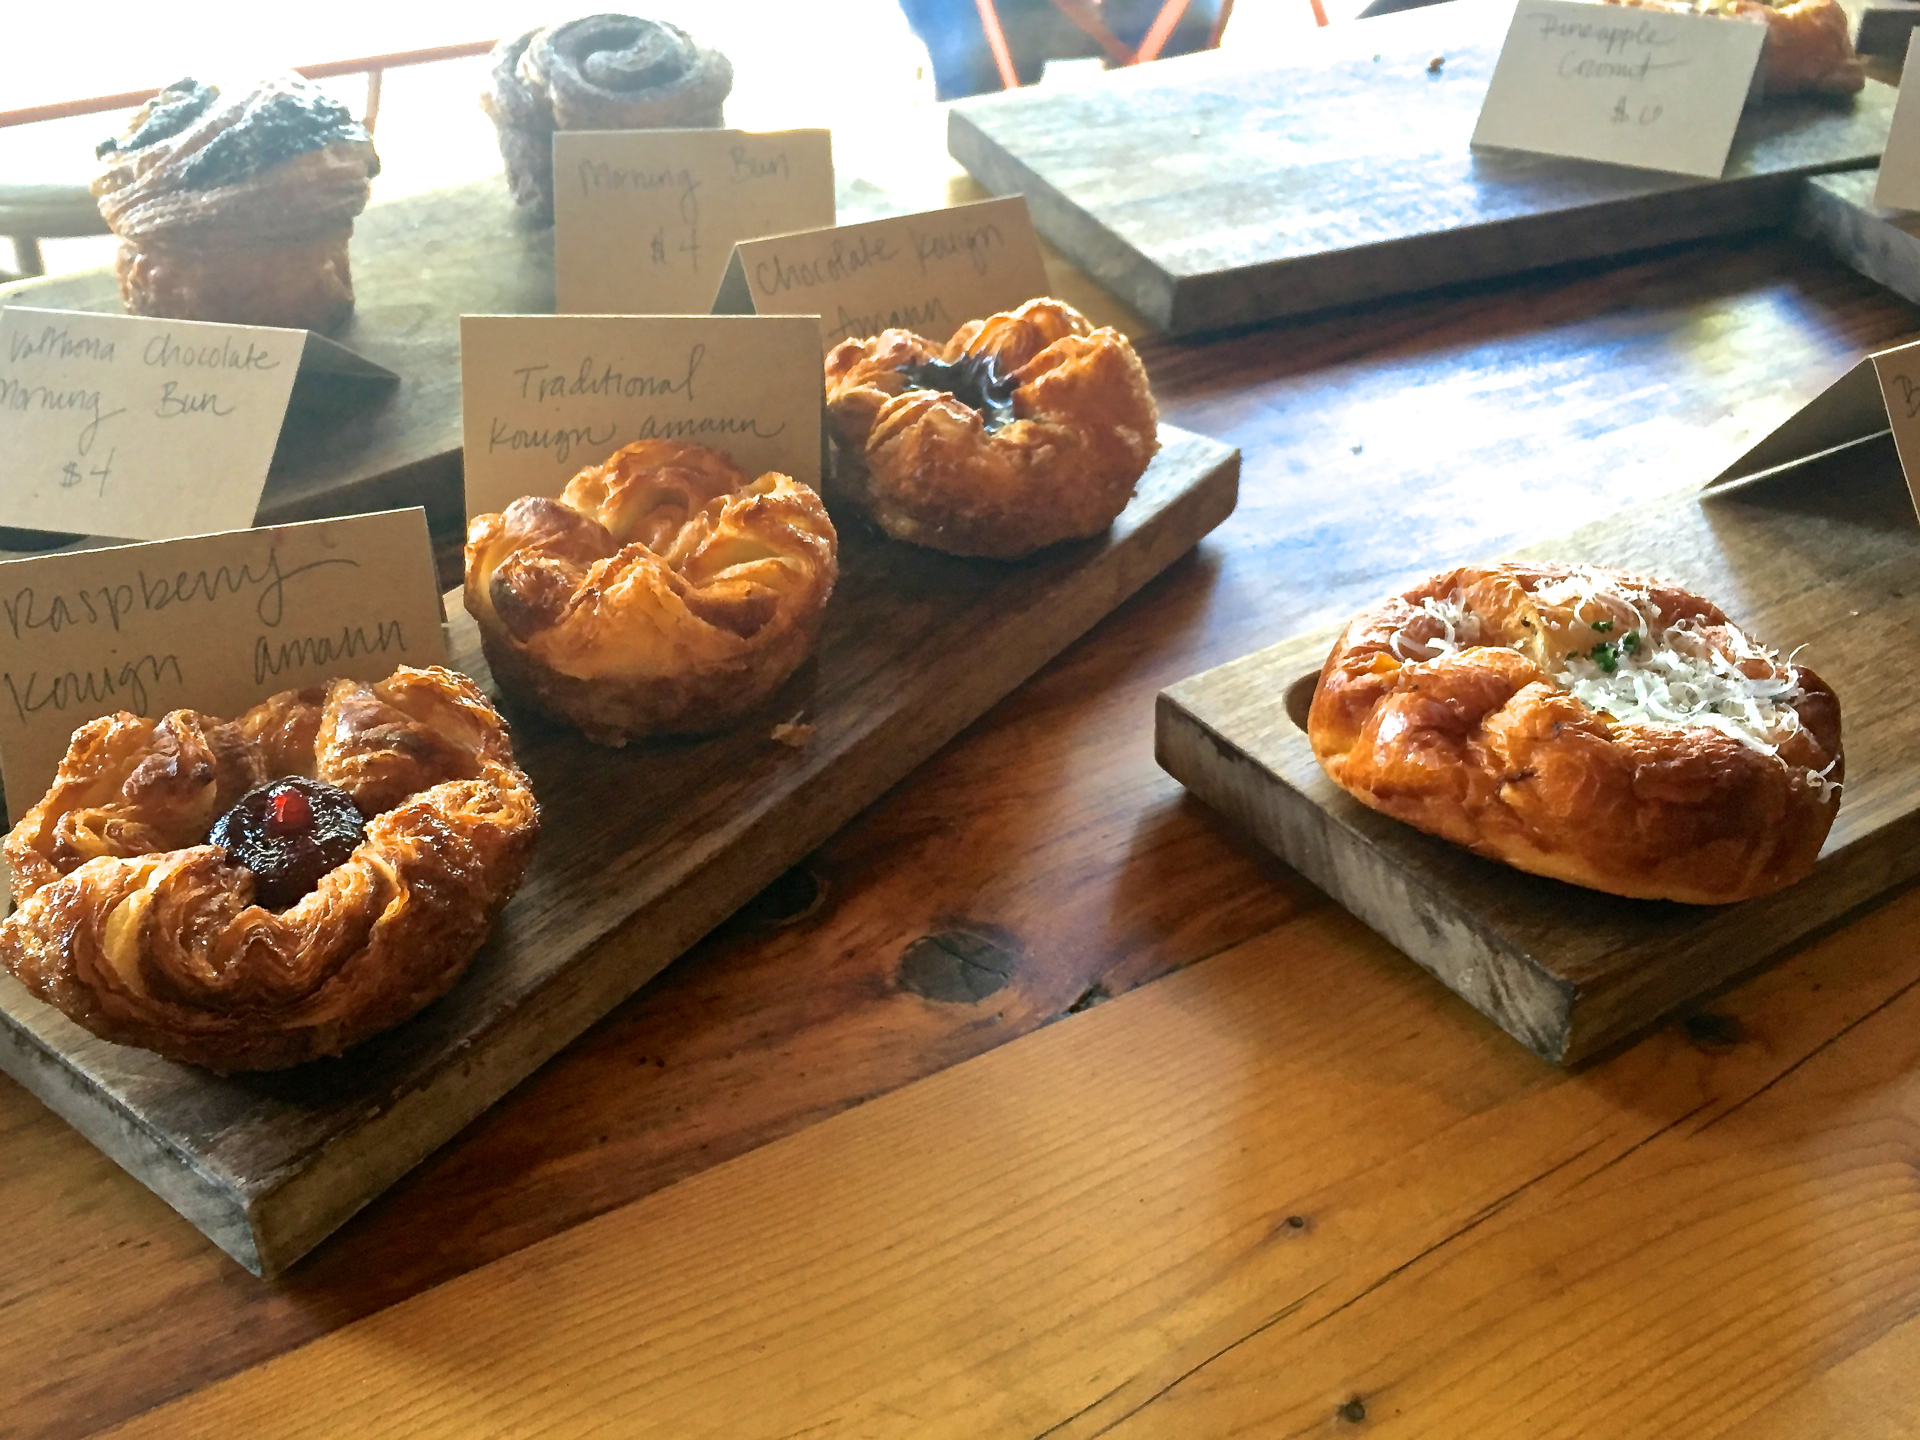 Pastries on display at a recent LoveForButter pop-up.